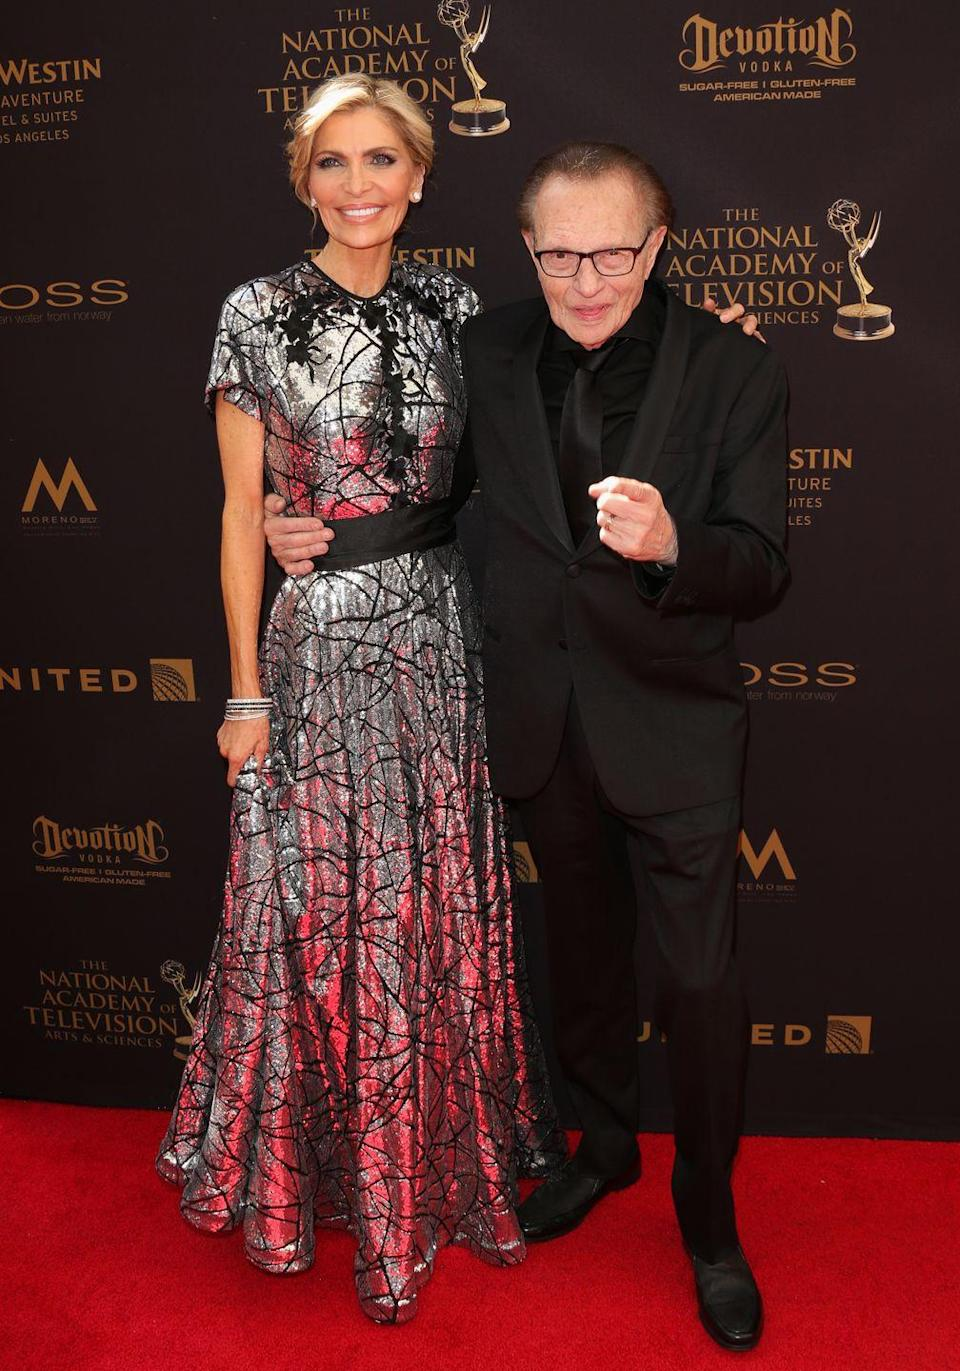 "<p>Television host Larry King has been married <a href=""https://www.distractify.com/p/celebrities-multiple-marriages"" rel=""nofollow noopener"" target=""_blank"" data-ylk=""slk:eight times"" class=""link rapid-noclick-resp"">eight times</a>, but technically had seven wives. His most recent marriage to actress Shawn Southwick ended in 2019. Before he married Shawn, Larry was with businesswoman Julie Alexander from 1989 to 1992, math teacher Sharon Lepore from 1976 to 1983, his high school sweetheart Alene Akins from 1968 to 1971 (and he was previously married to her from 1961 to 1963), Mickey Sutphin from 1964 to 1967, and Annette Kay in 1961. His first wife was Freda Miller; they married in 1952. He had his marriage with her annulled in 1953.<br></p>"